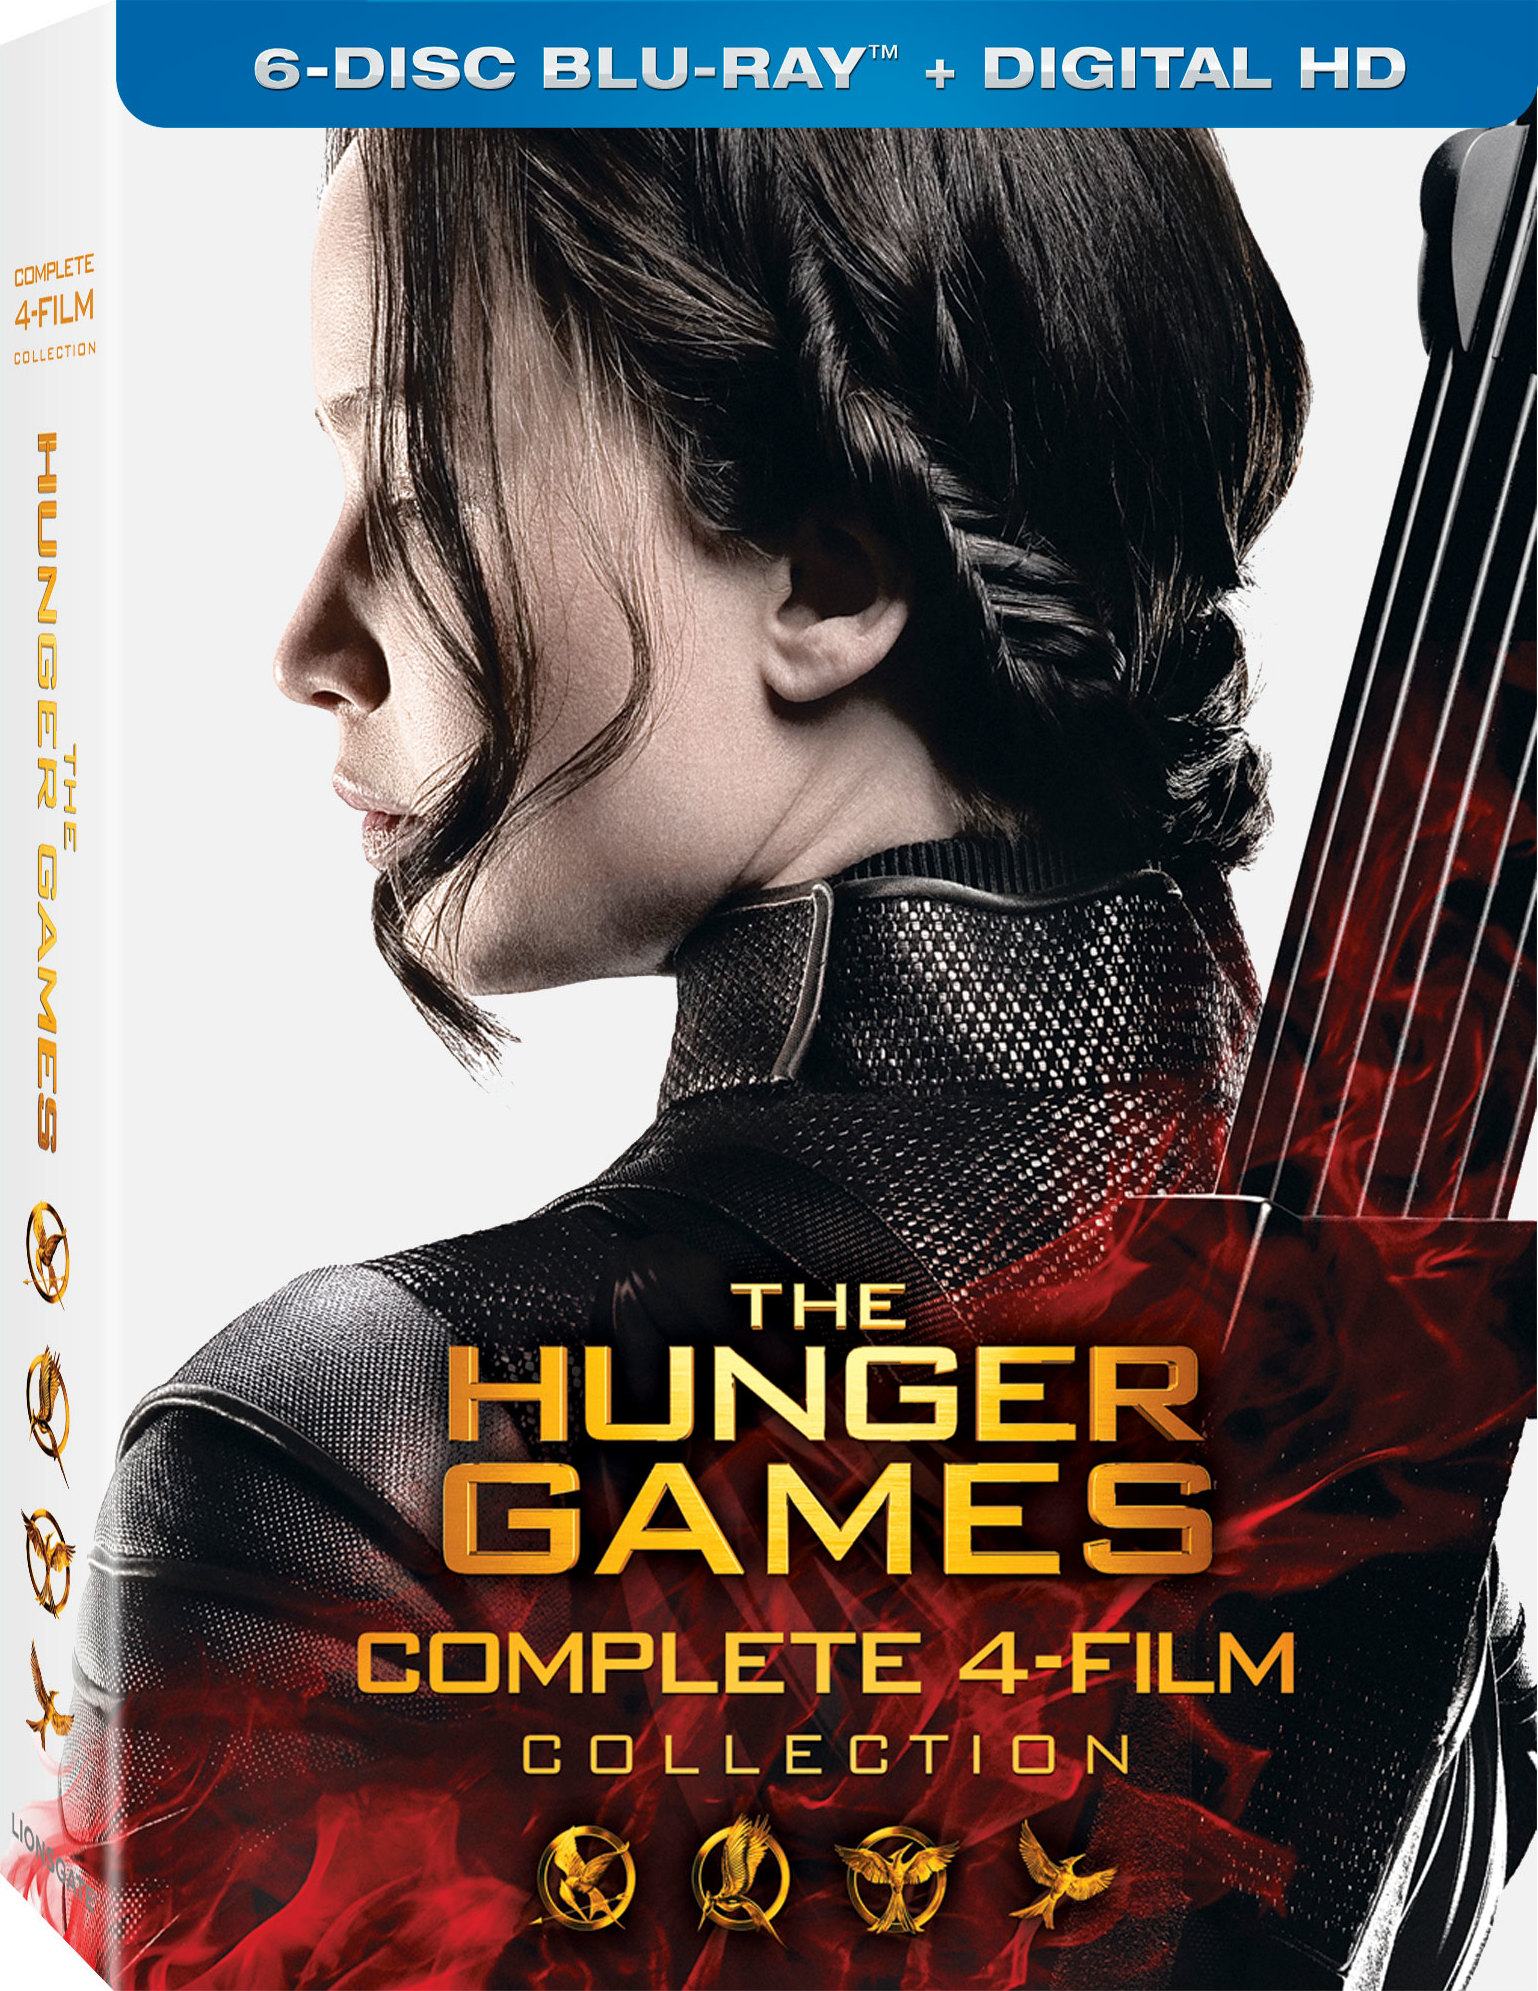 The Hunger Games 4-Film Complete Collection (2012-2015) Blu-ray